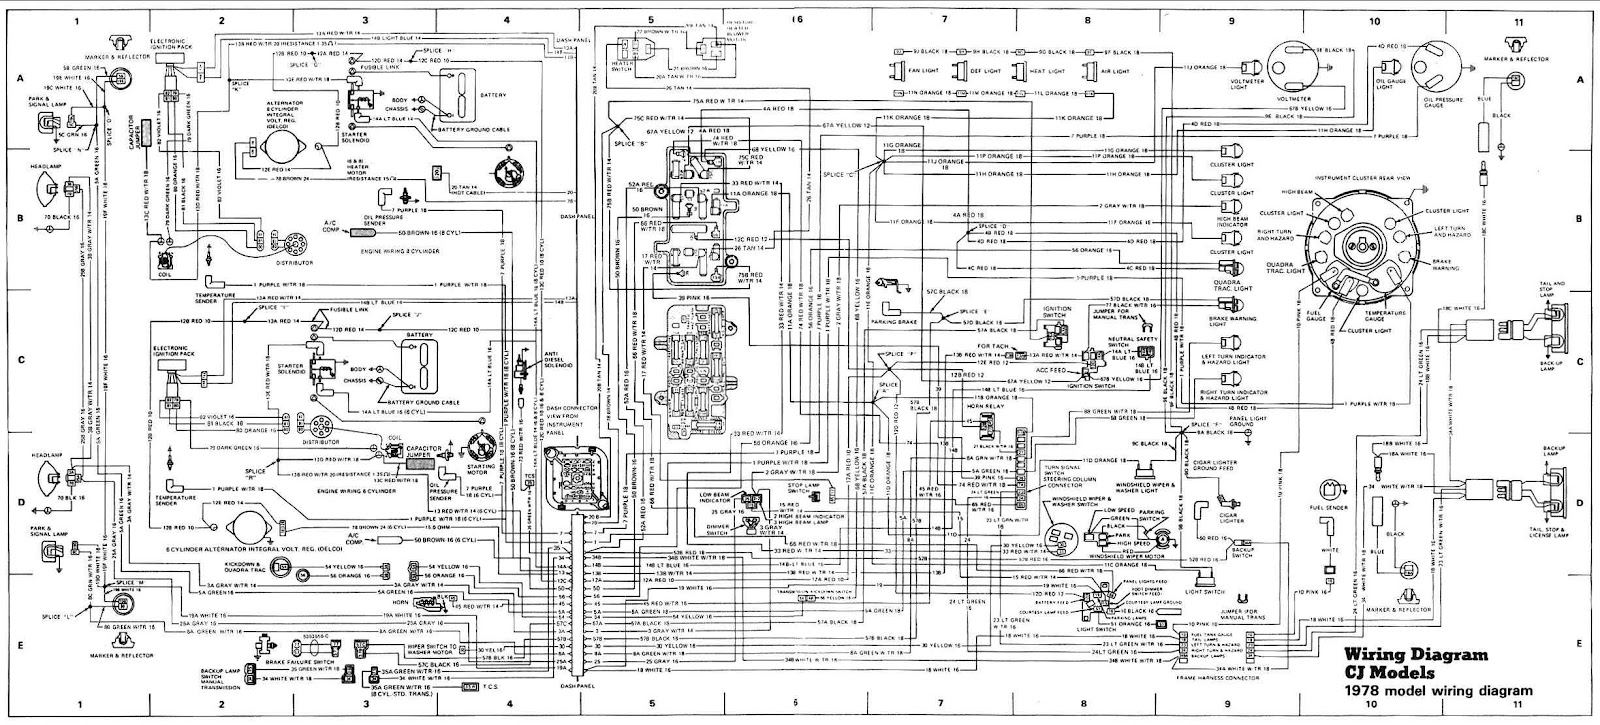 Jeep CJ Models 1978 Complete Electrical Wiring Diagram | All about Wiring Diagrams